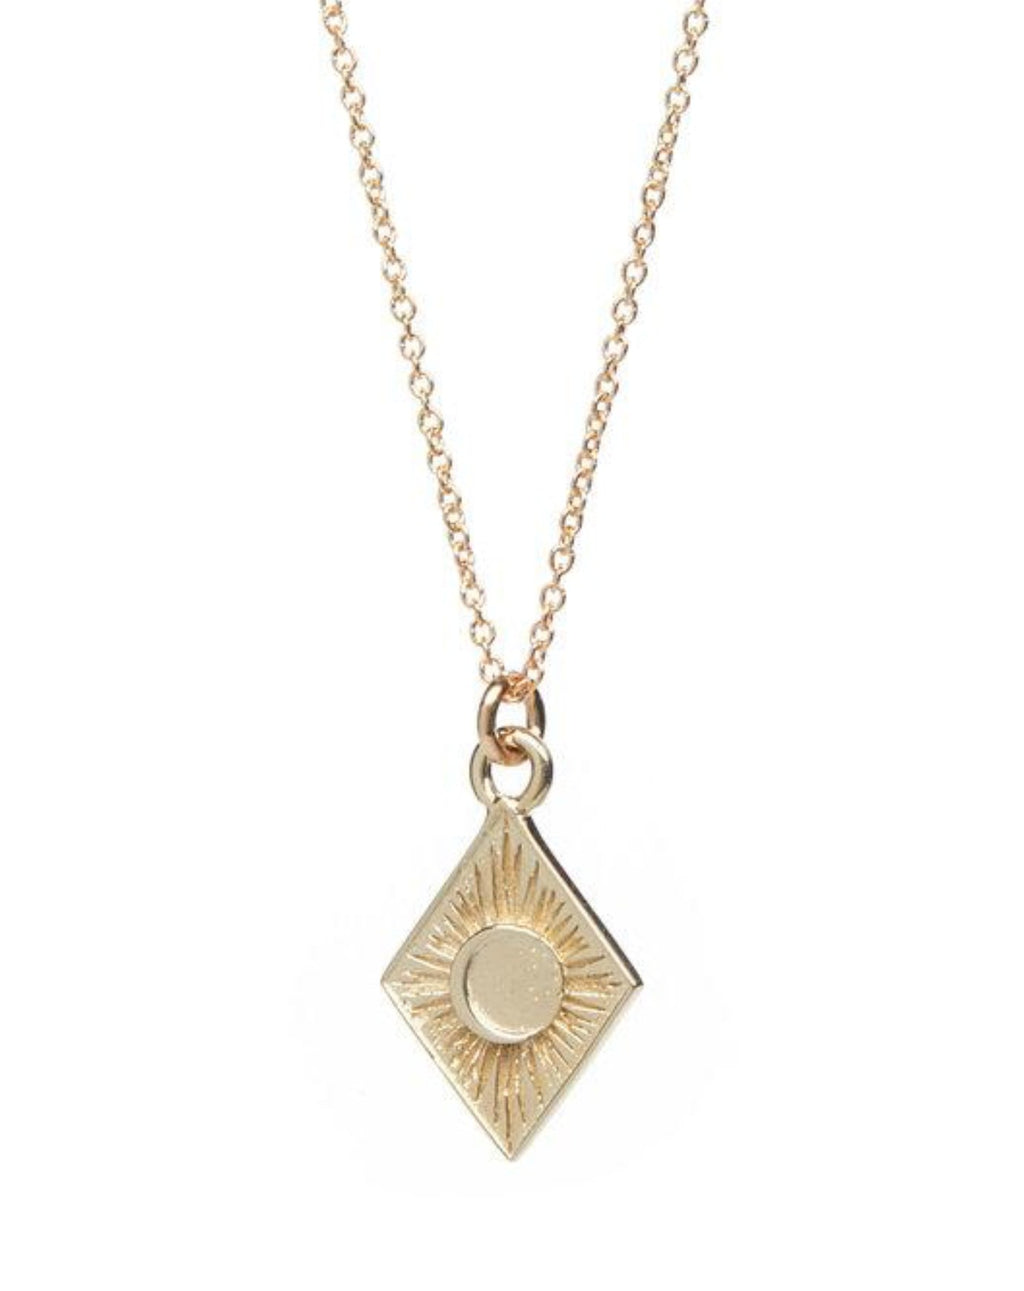 Talon 10K Gold Eclipse Pendant Necklace